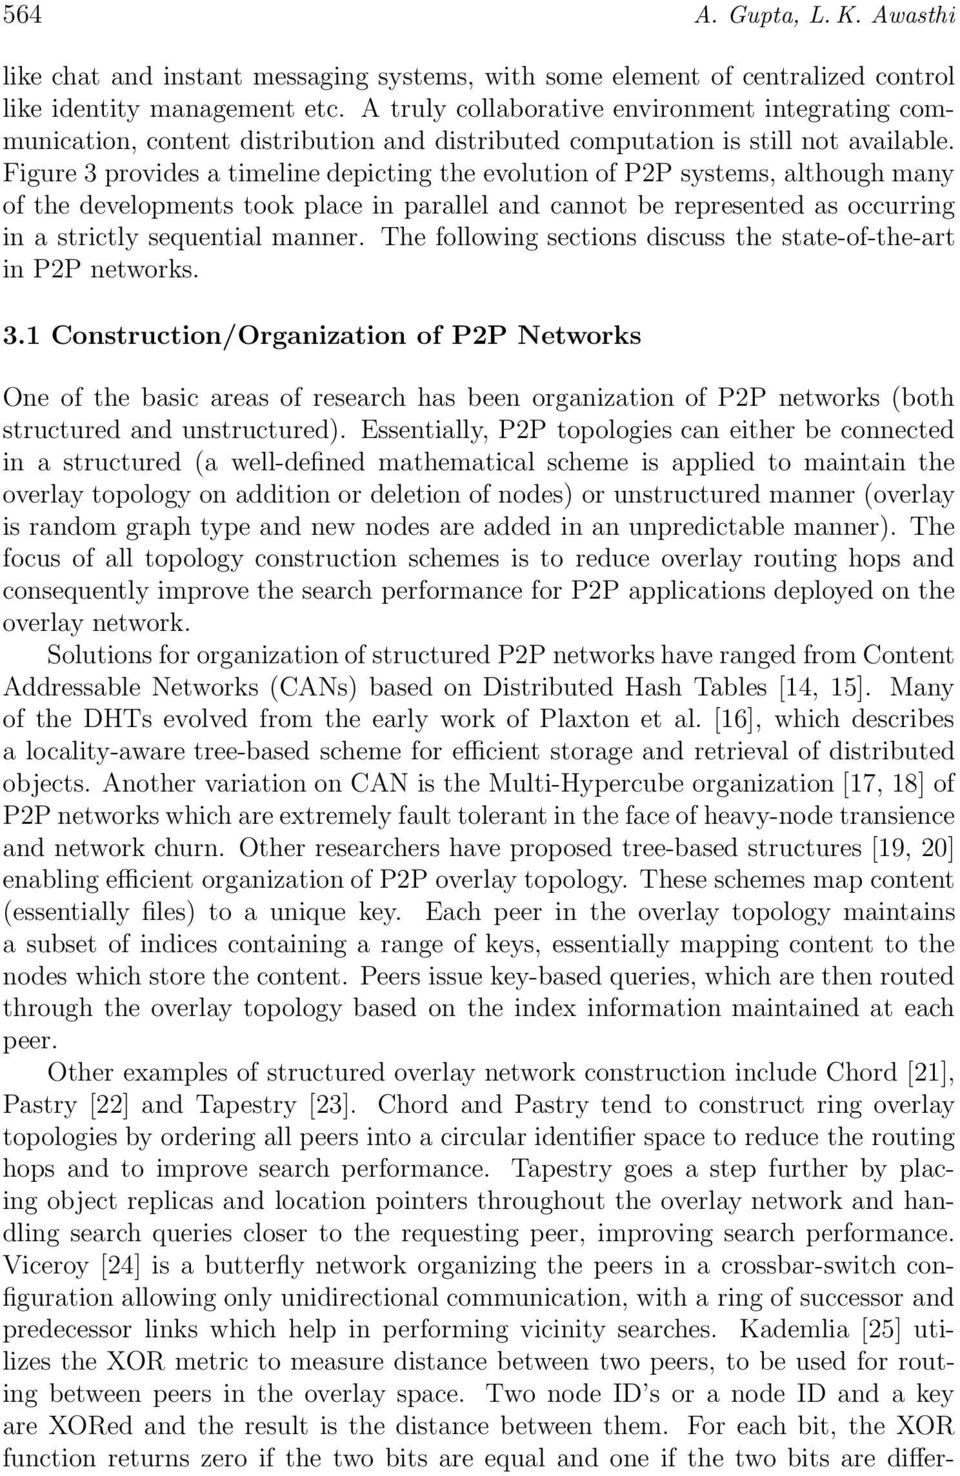 Figure 3 provides a timeline depicting the evolution of P2P systems, although many of the developments took place in parallel and cannot be represented as occurring in a strictly sequential manner.